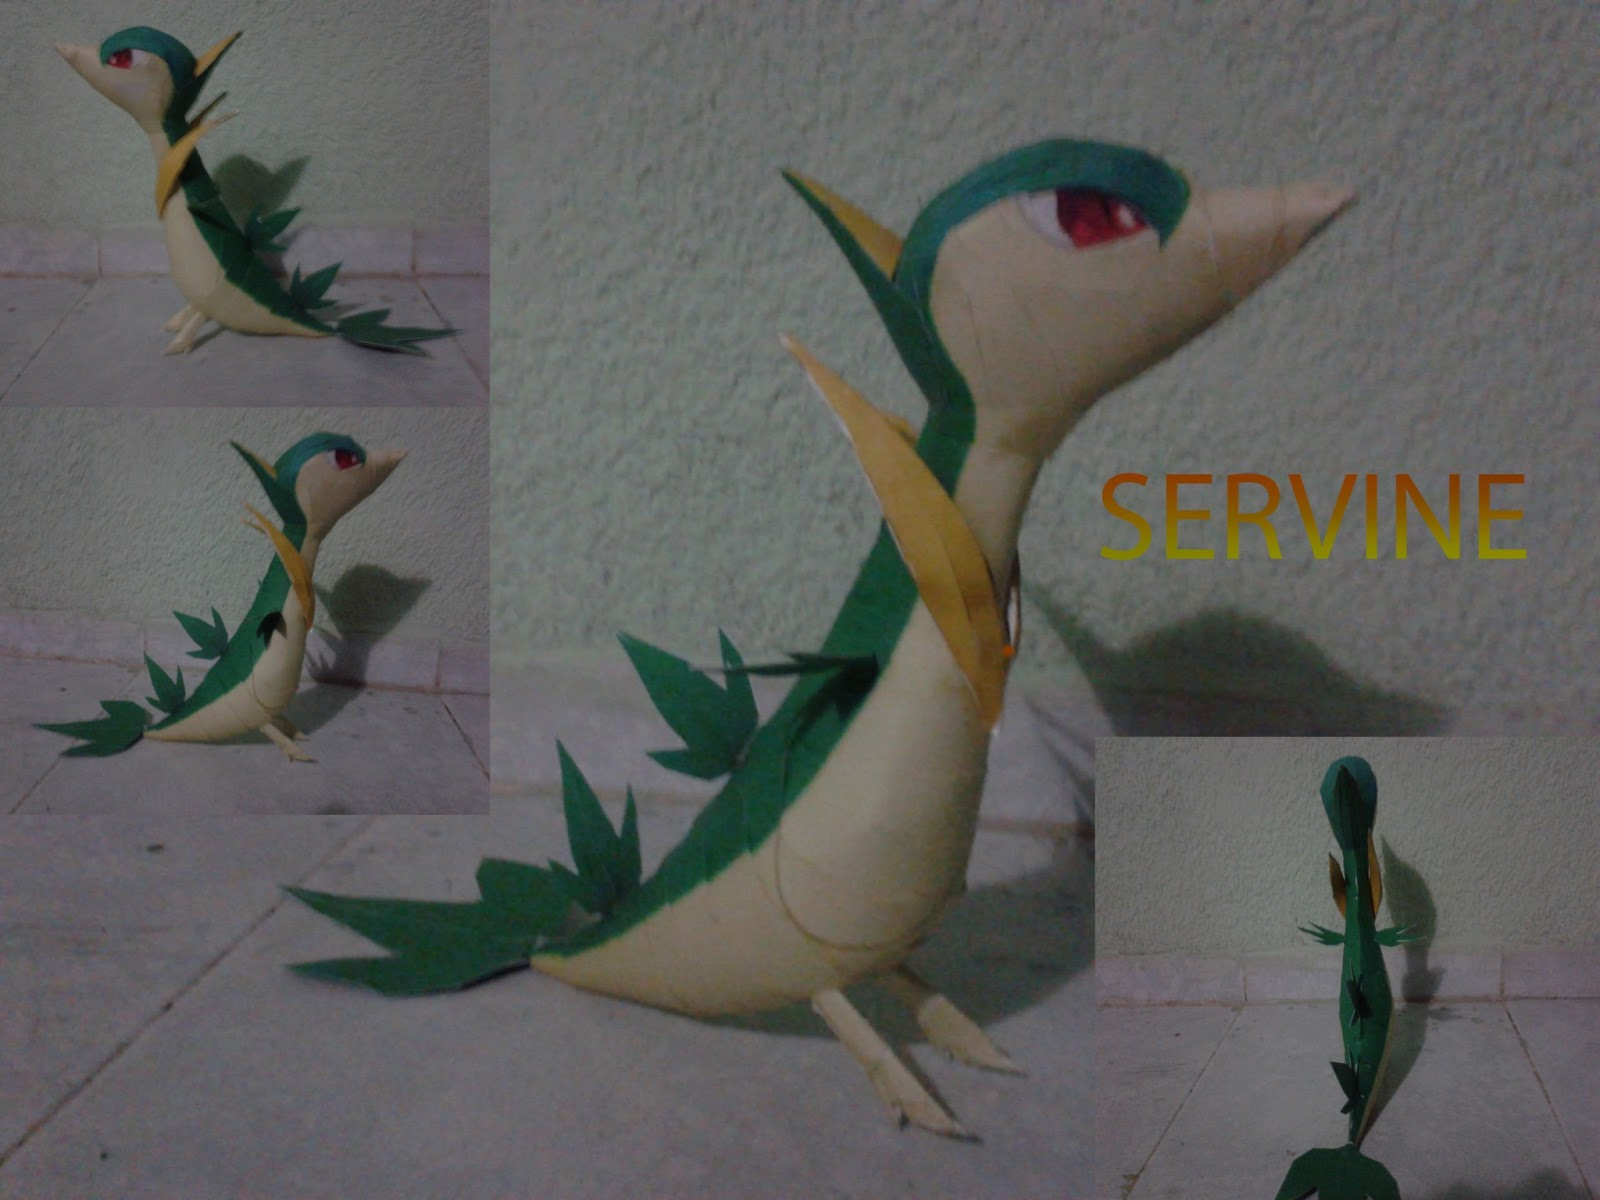 Pokemon Servine Papercraft